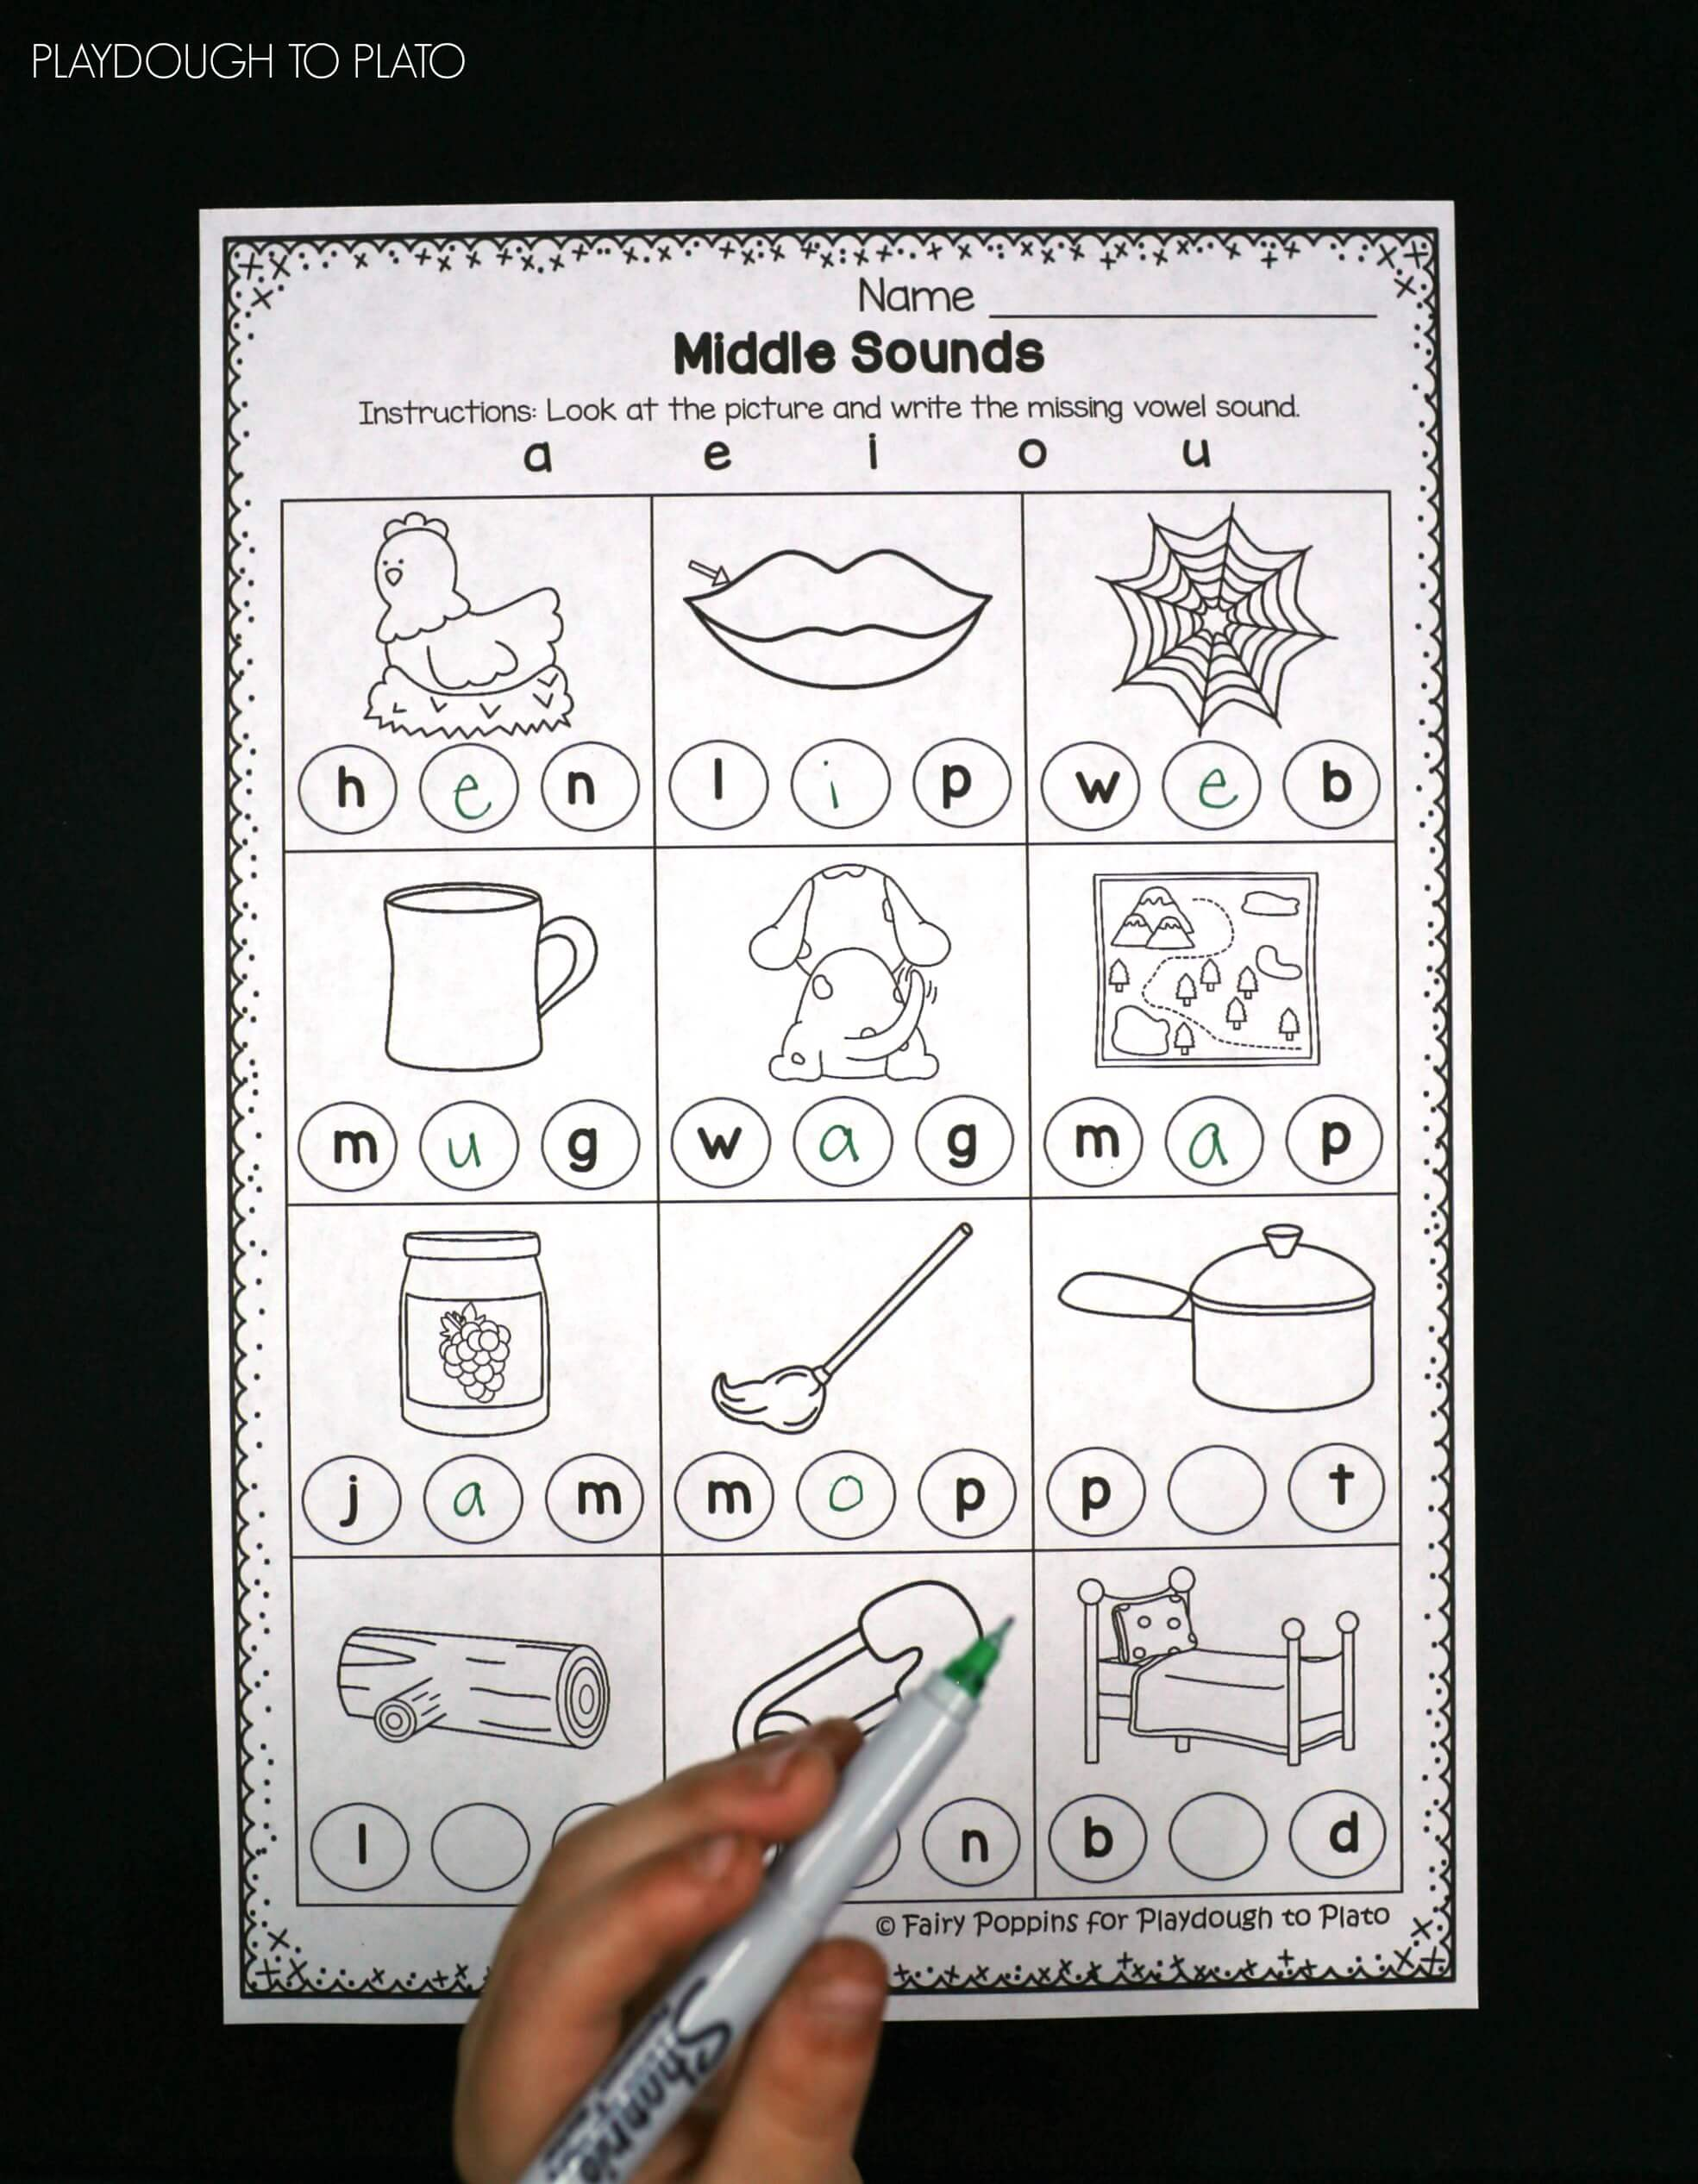 Worksheet Middle Sound Worksheets middle sounds worksheets playdough to plato free sound worksheets